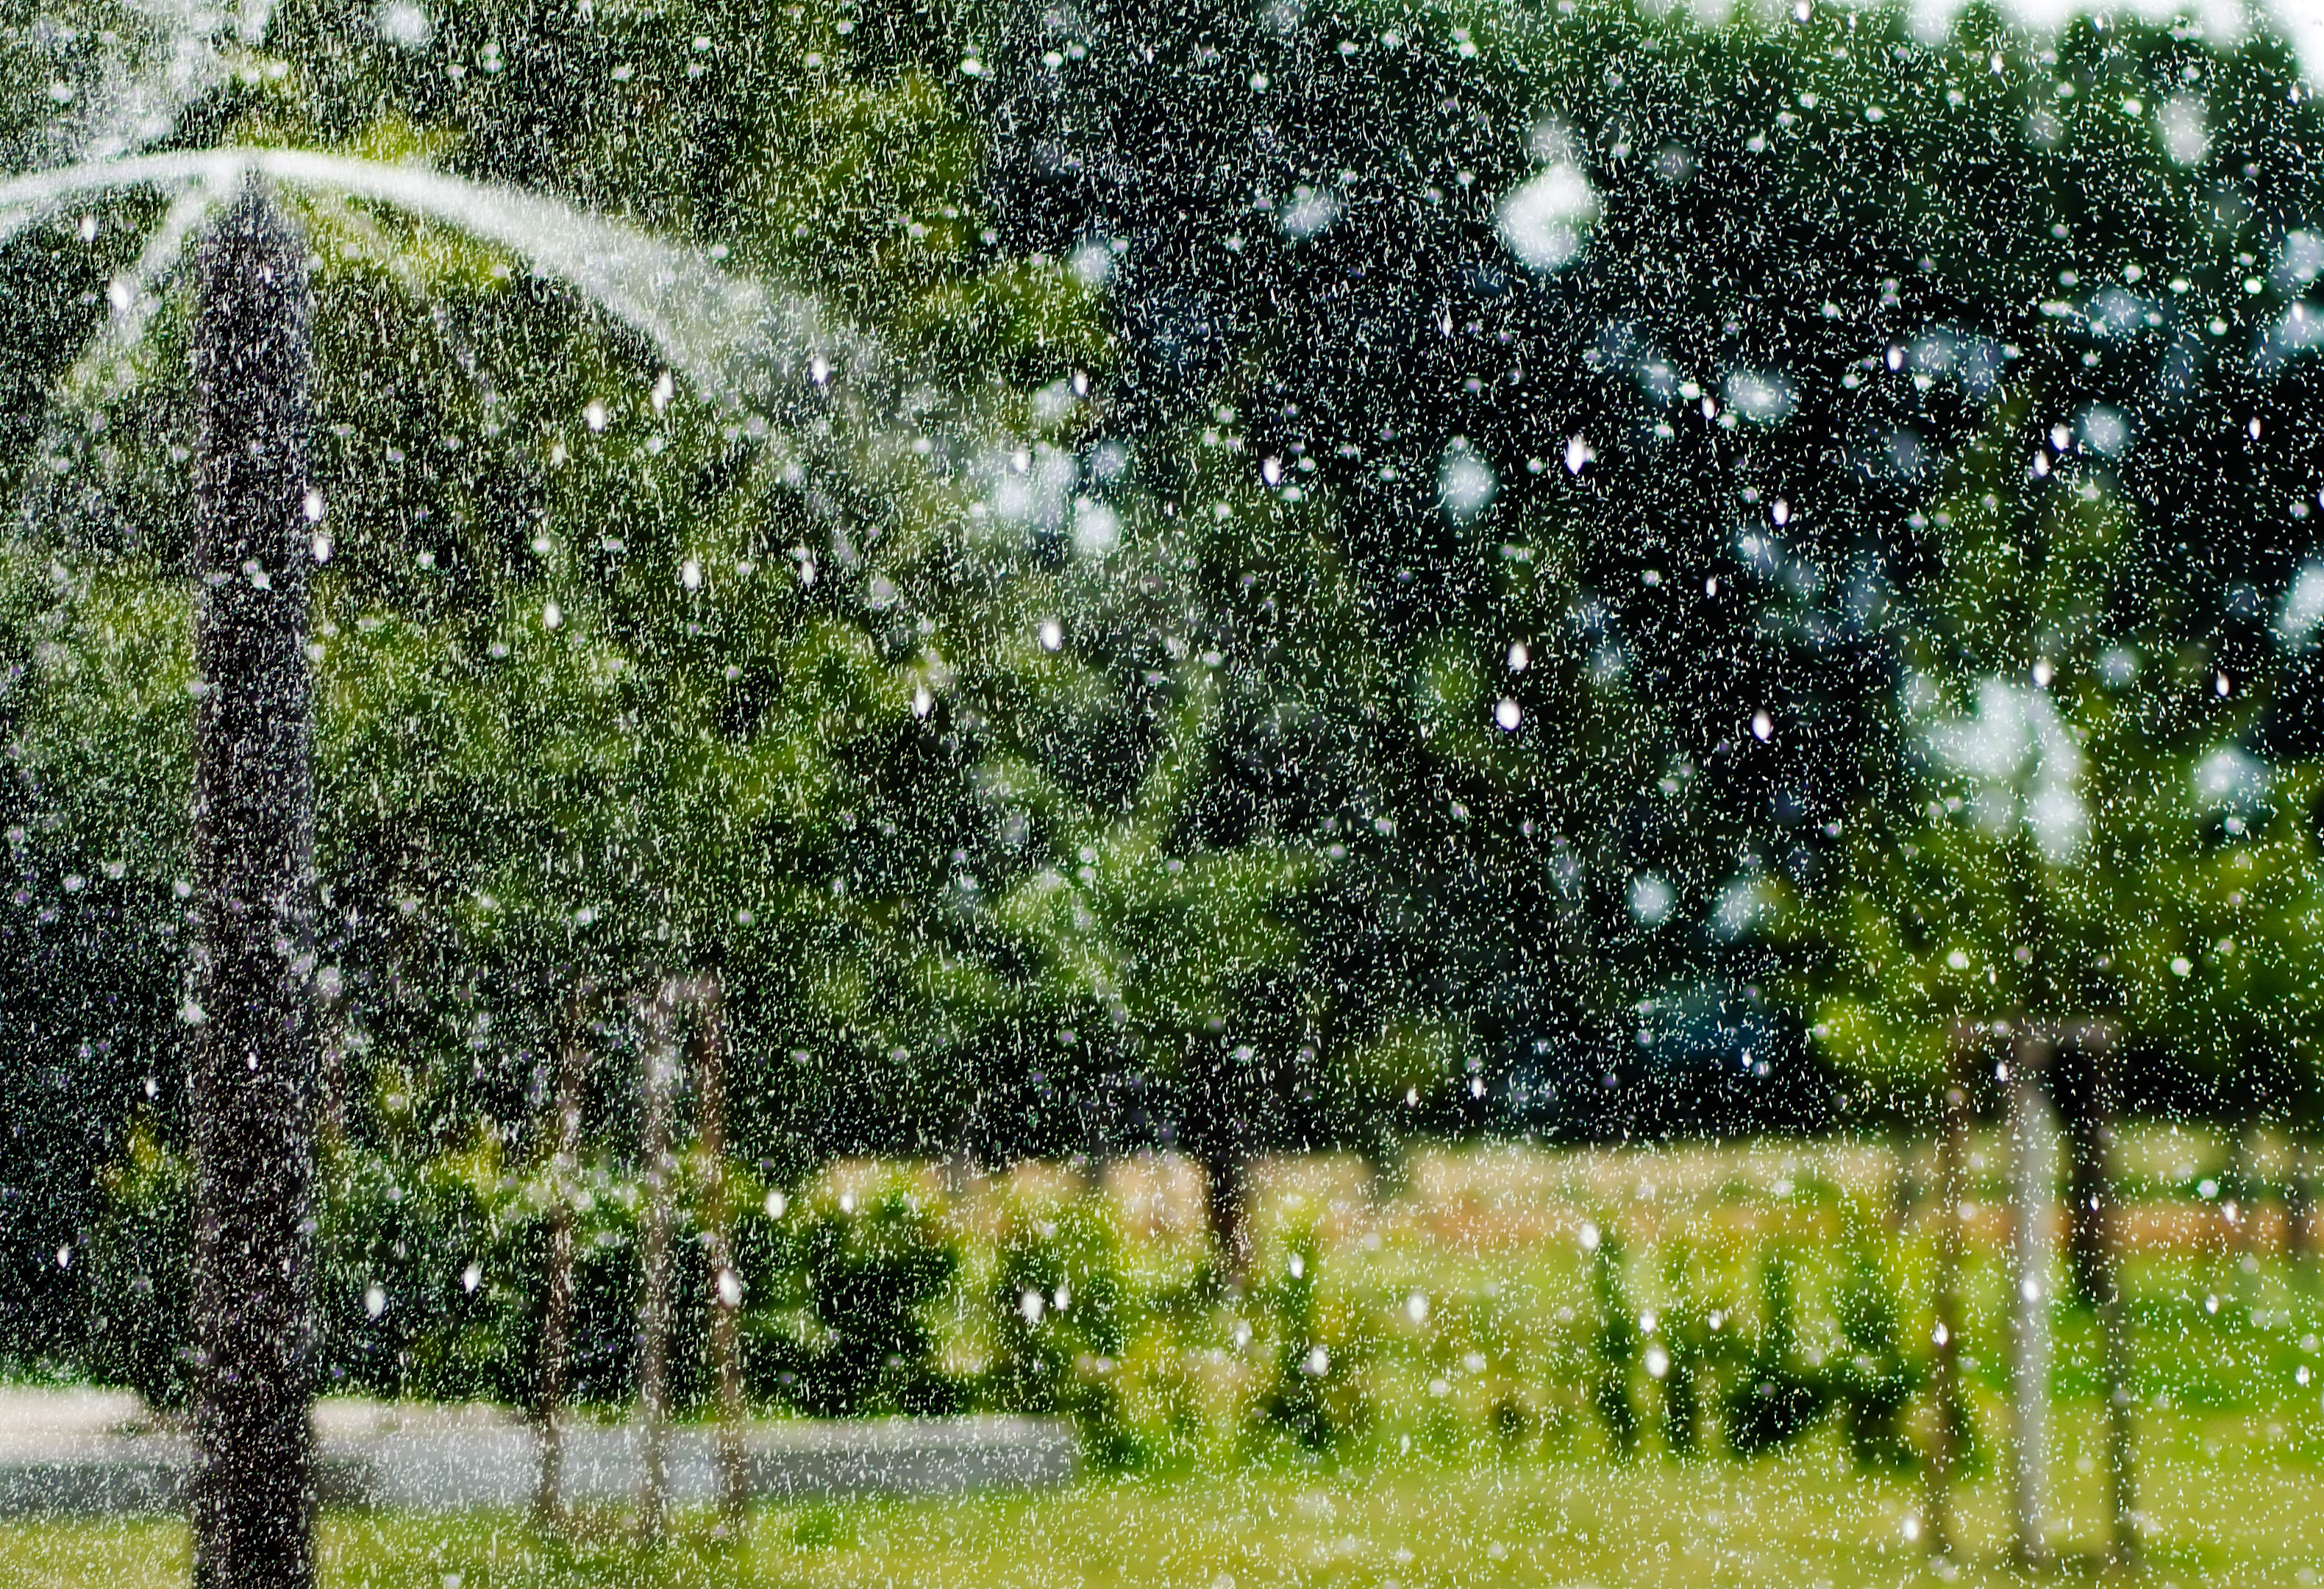 Water sprinkler in Maxau